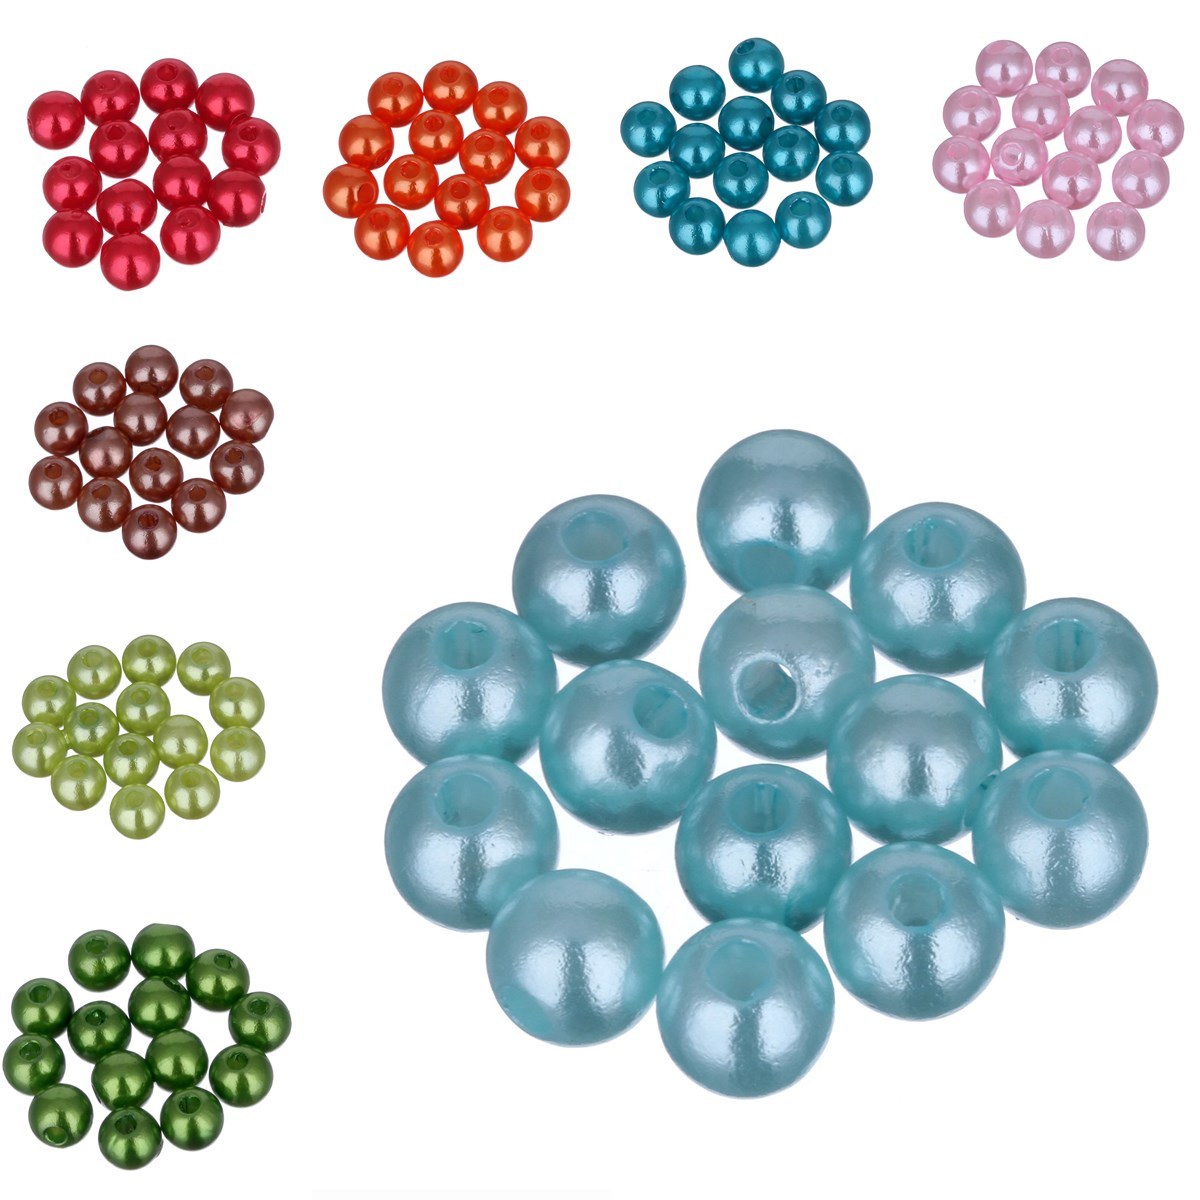 200pcs/lot Cheap 5A Quality! 5MM Mixed Color Fashion Round Acrylic Pearl Spacer Loose Beads DIY Jewelry Making Wholesale(China (Mainland))